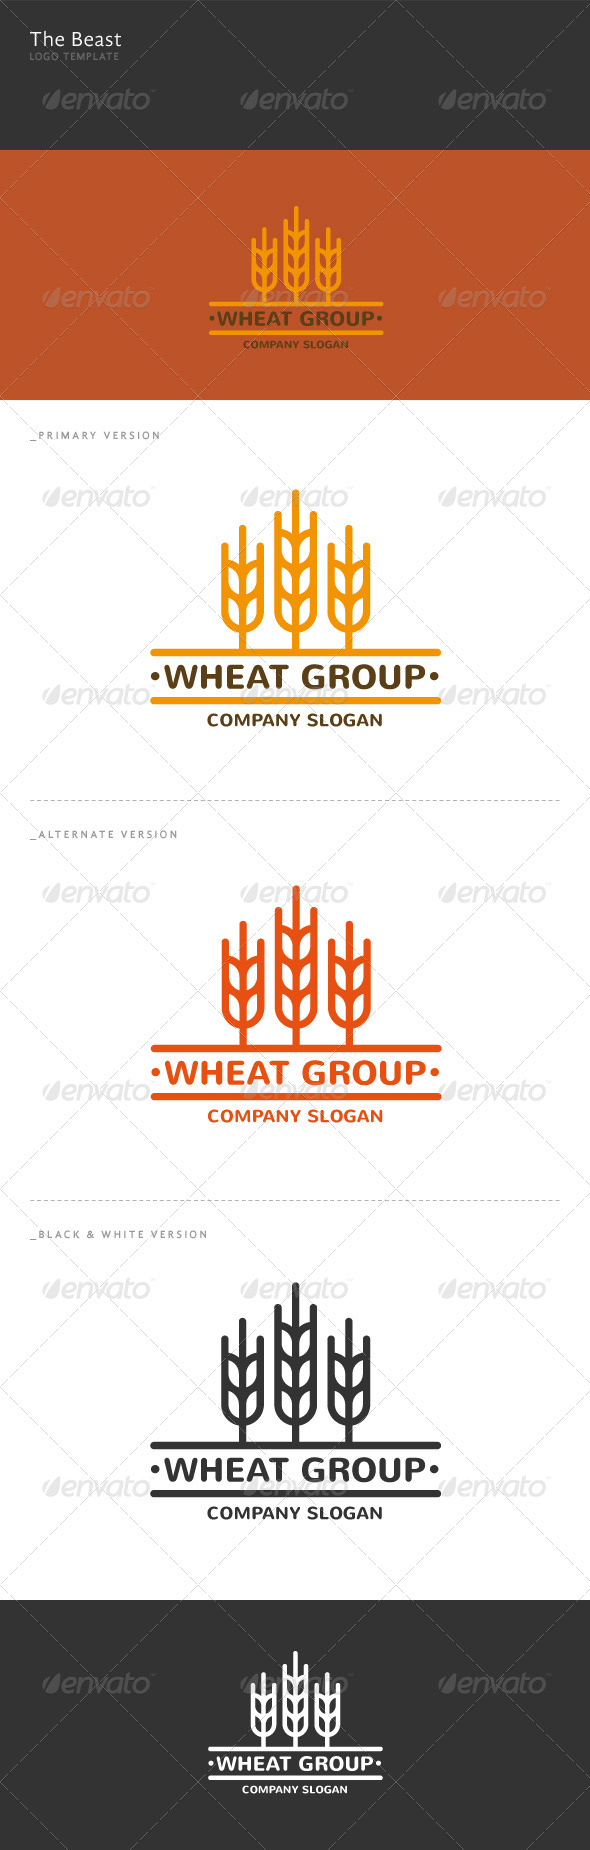 Wheat Group Logo - Nature Logo Templates